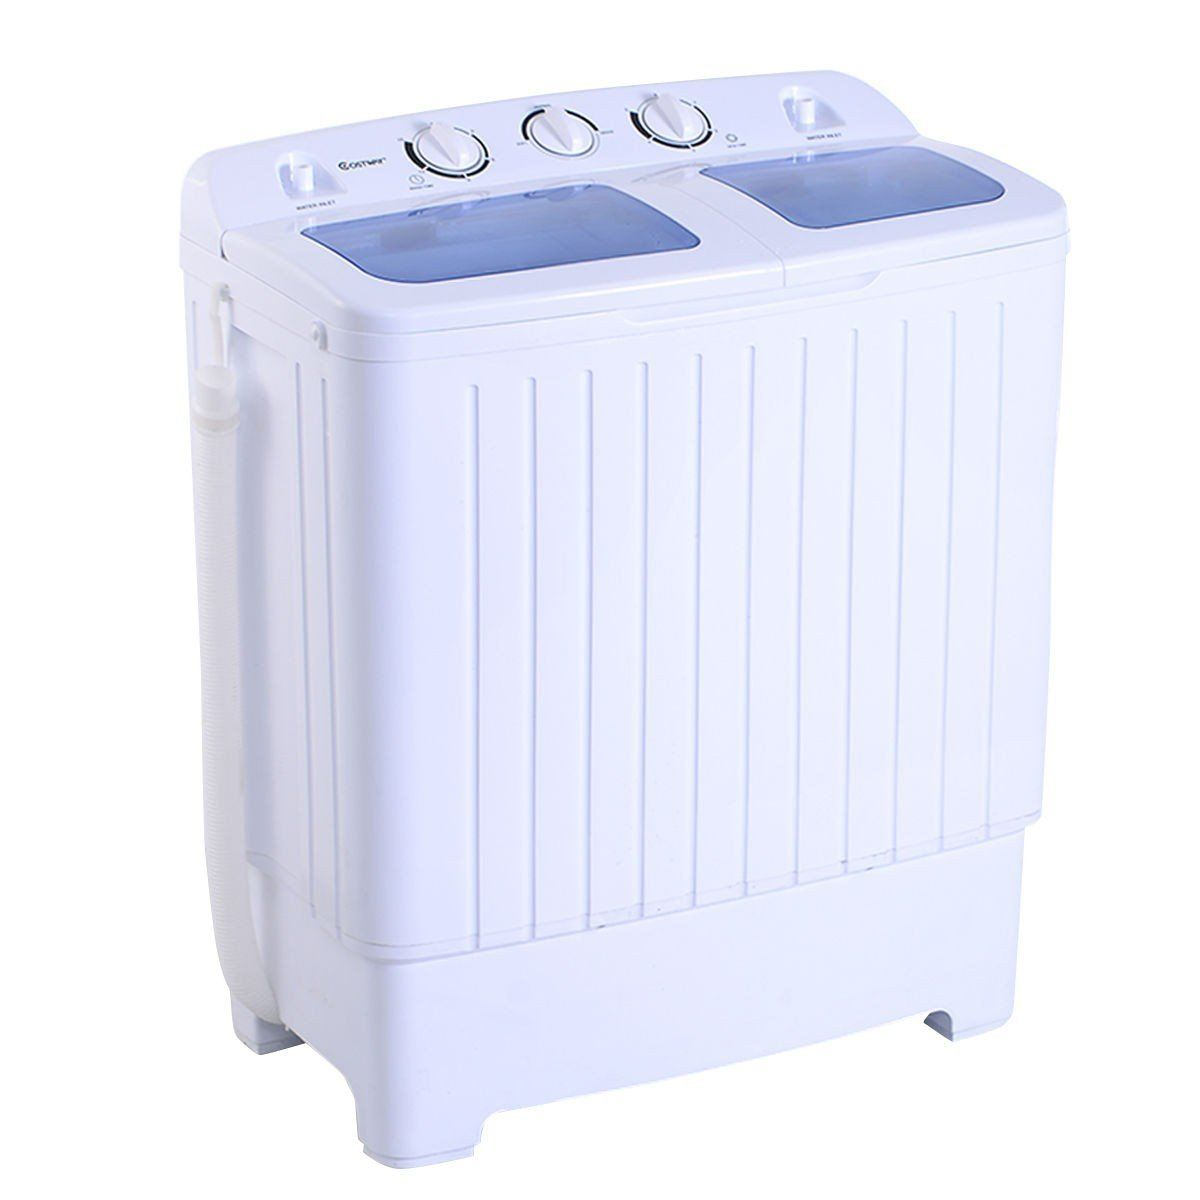 Apartment Washer And Dryer: Pin By Best Small Microwave On Apartment Size Washing